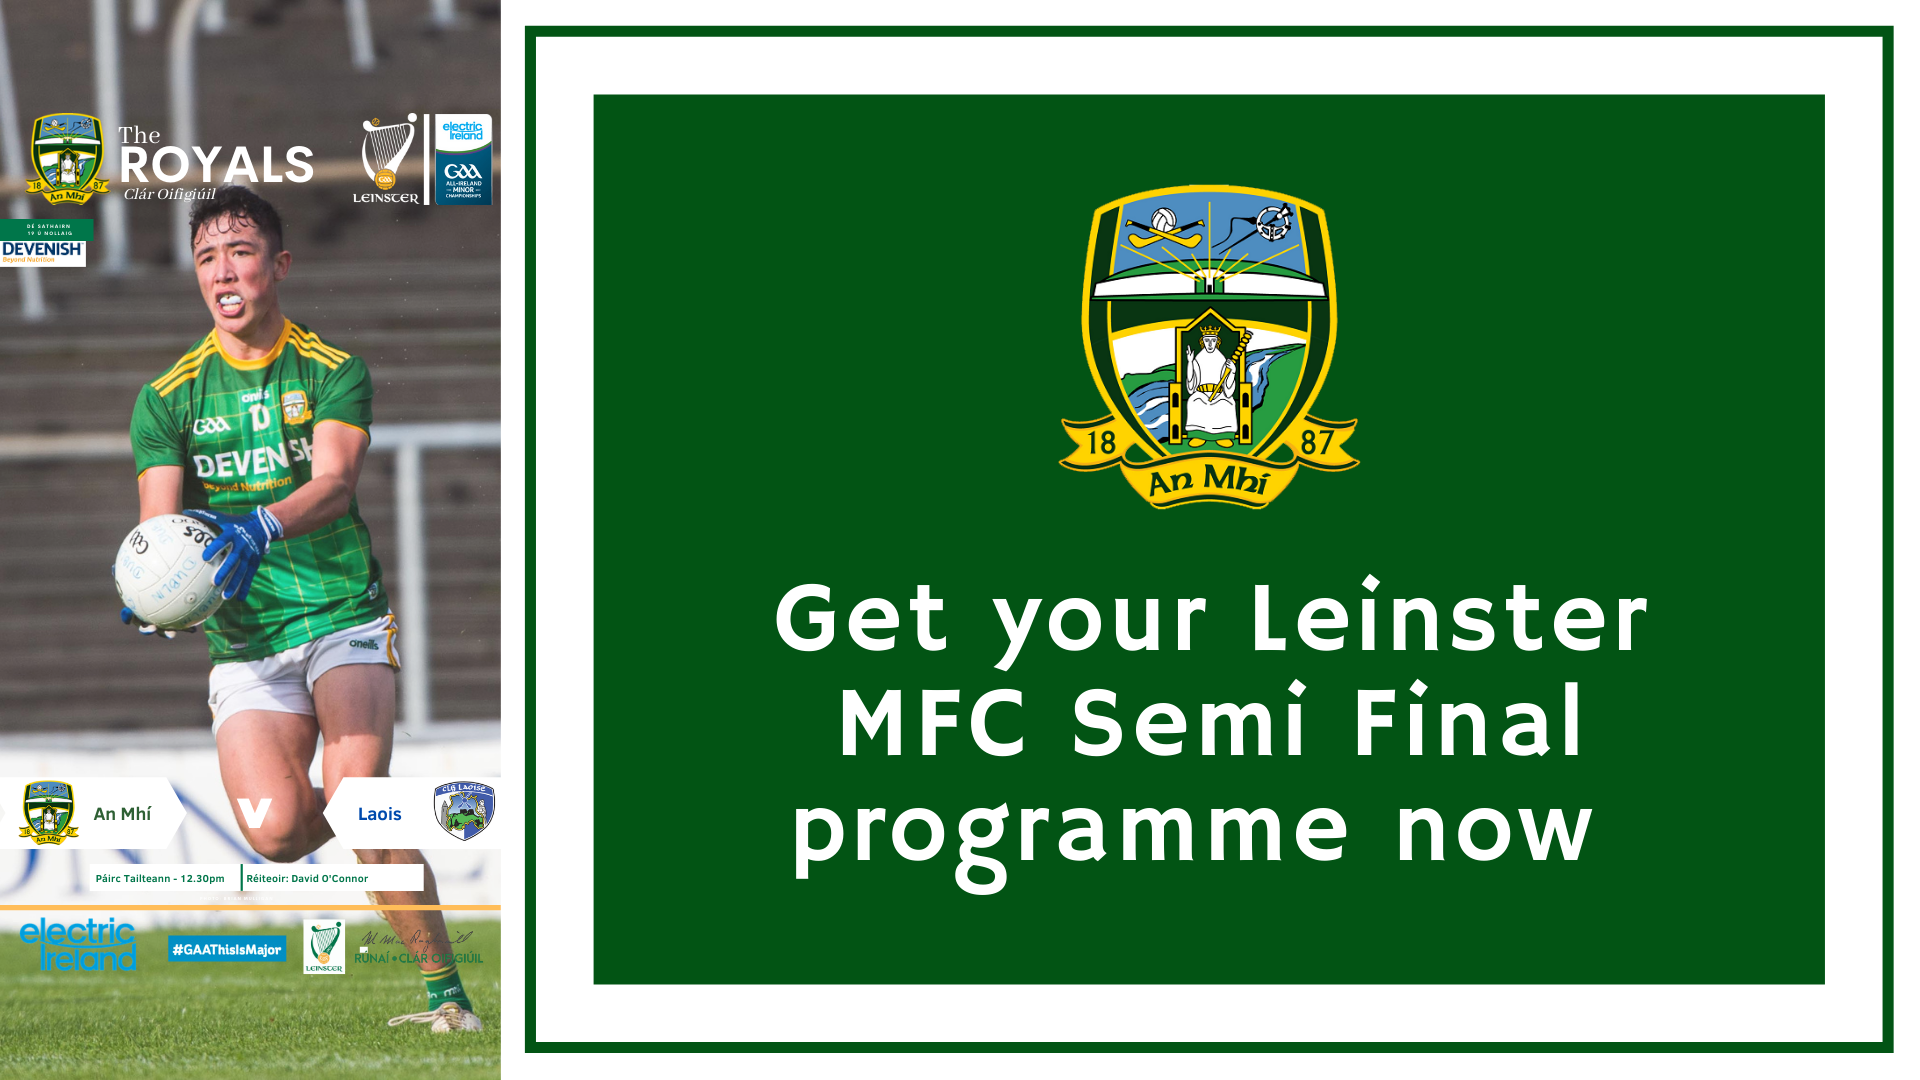 Leinster MFC semi final programme now available